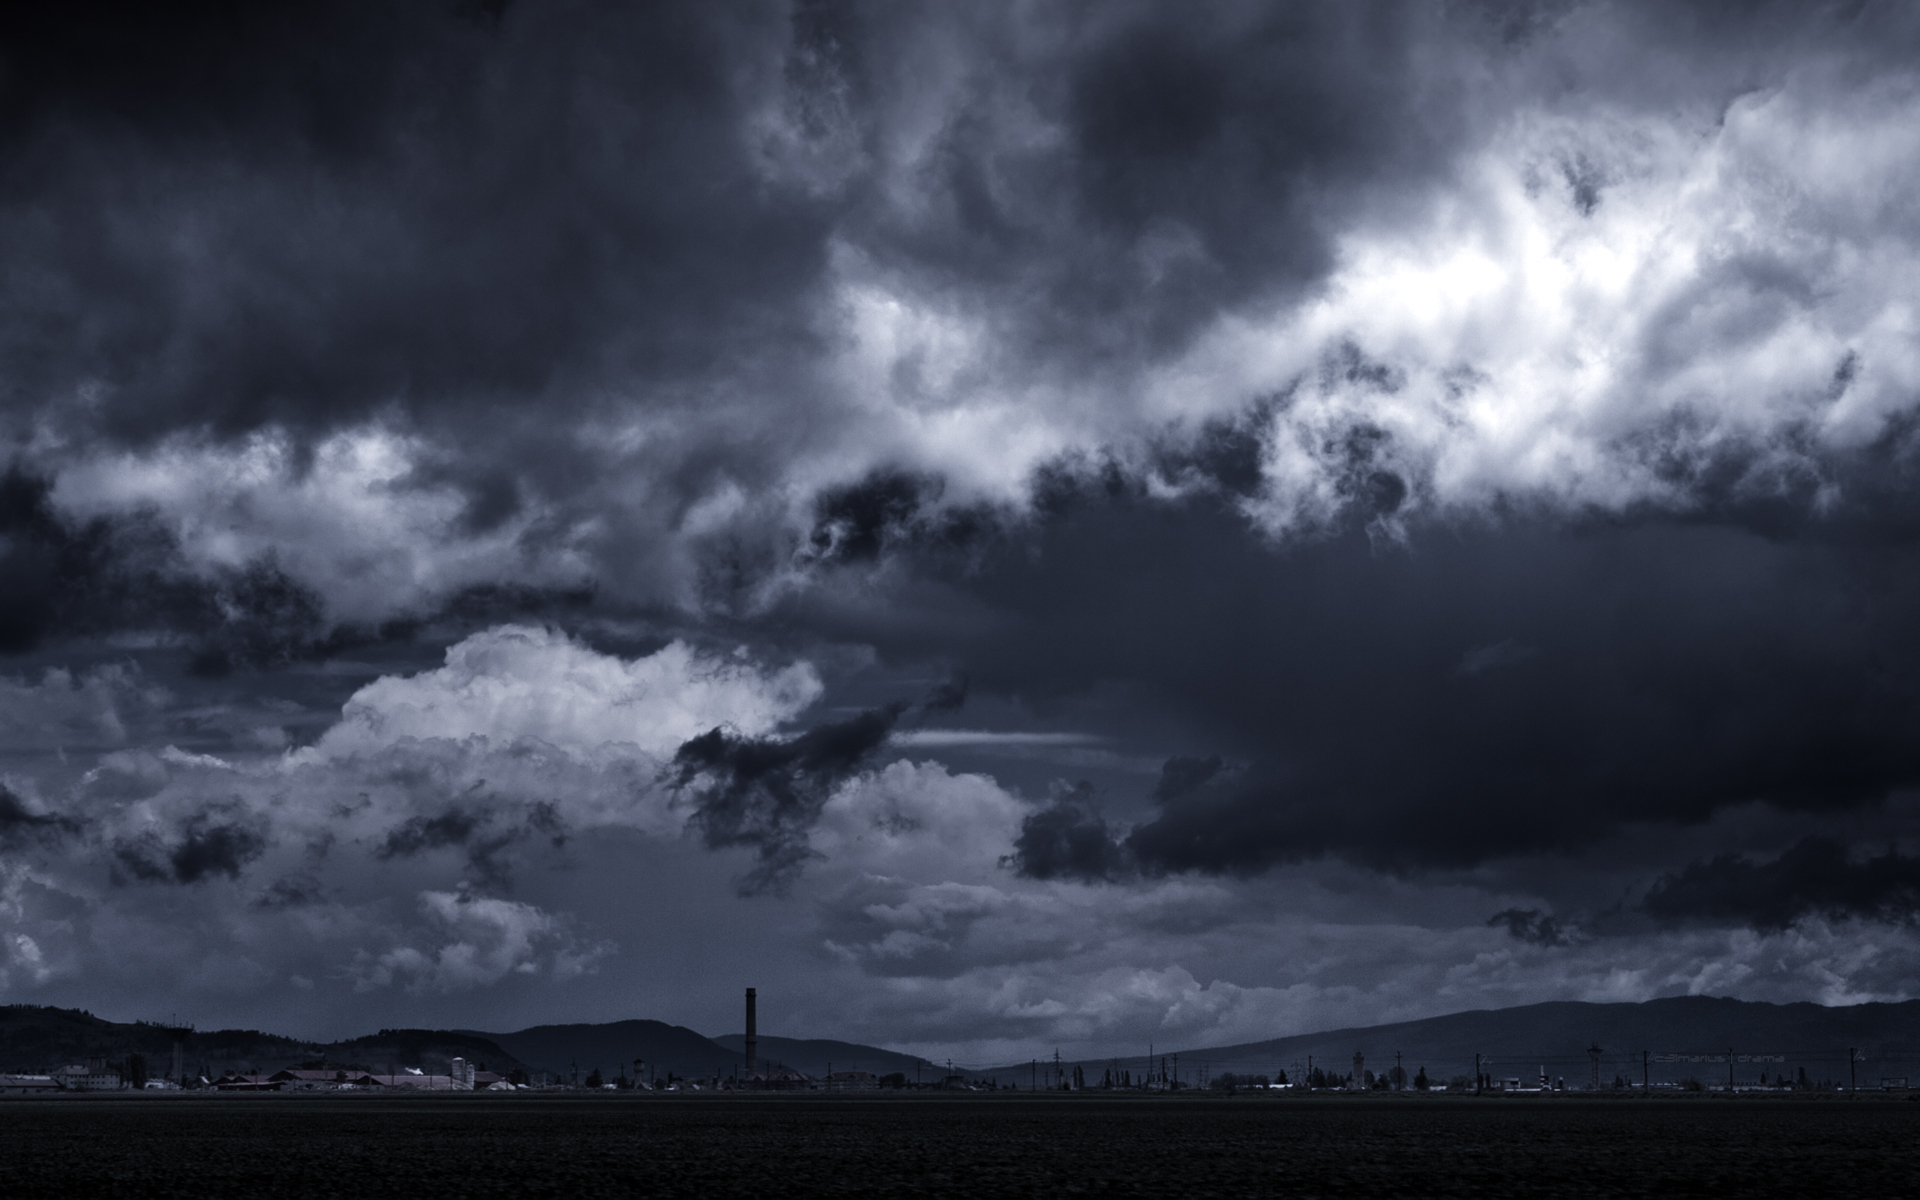 Storm Clouds on Horizon for Native Advertising - Mobile Advertising News & Information | MobileAdvertisingWatch.com